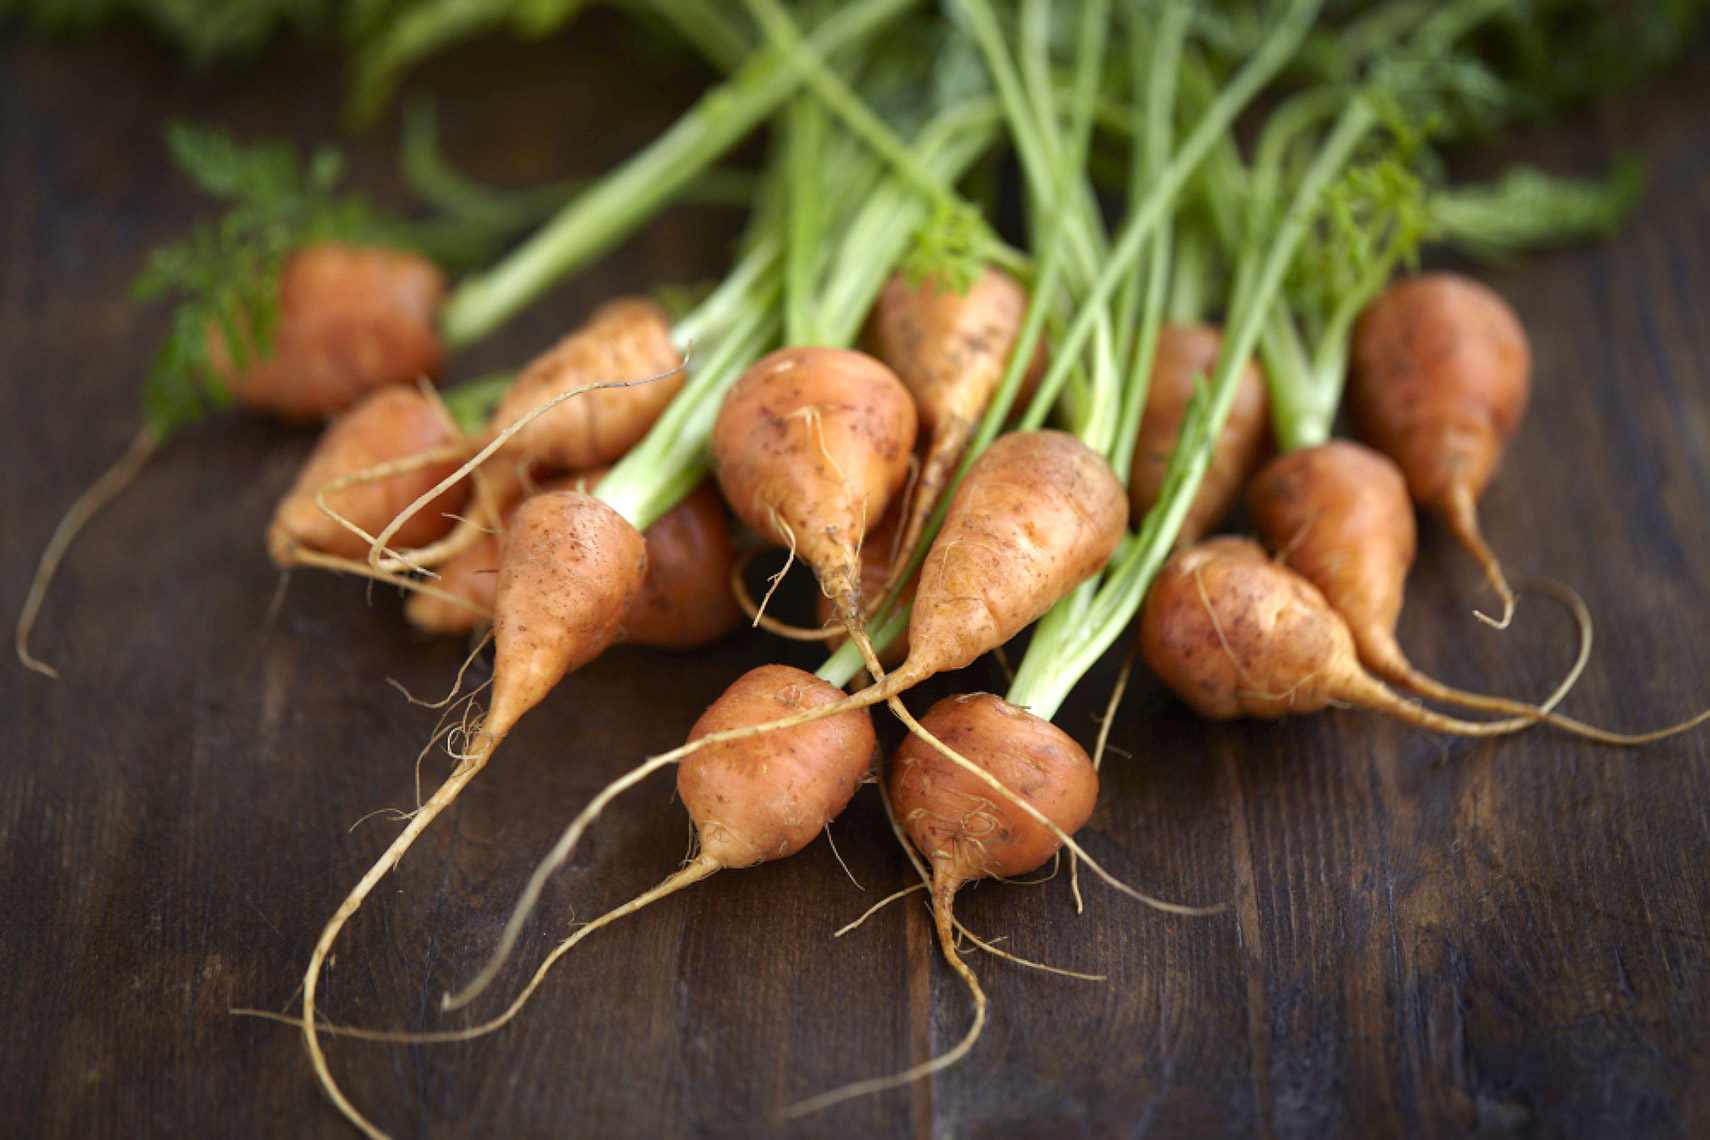 AlanCampbellPhotography, fresh ingredients carrots